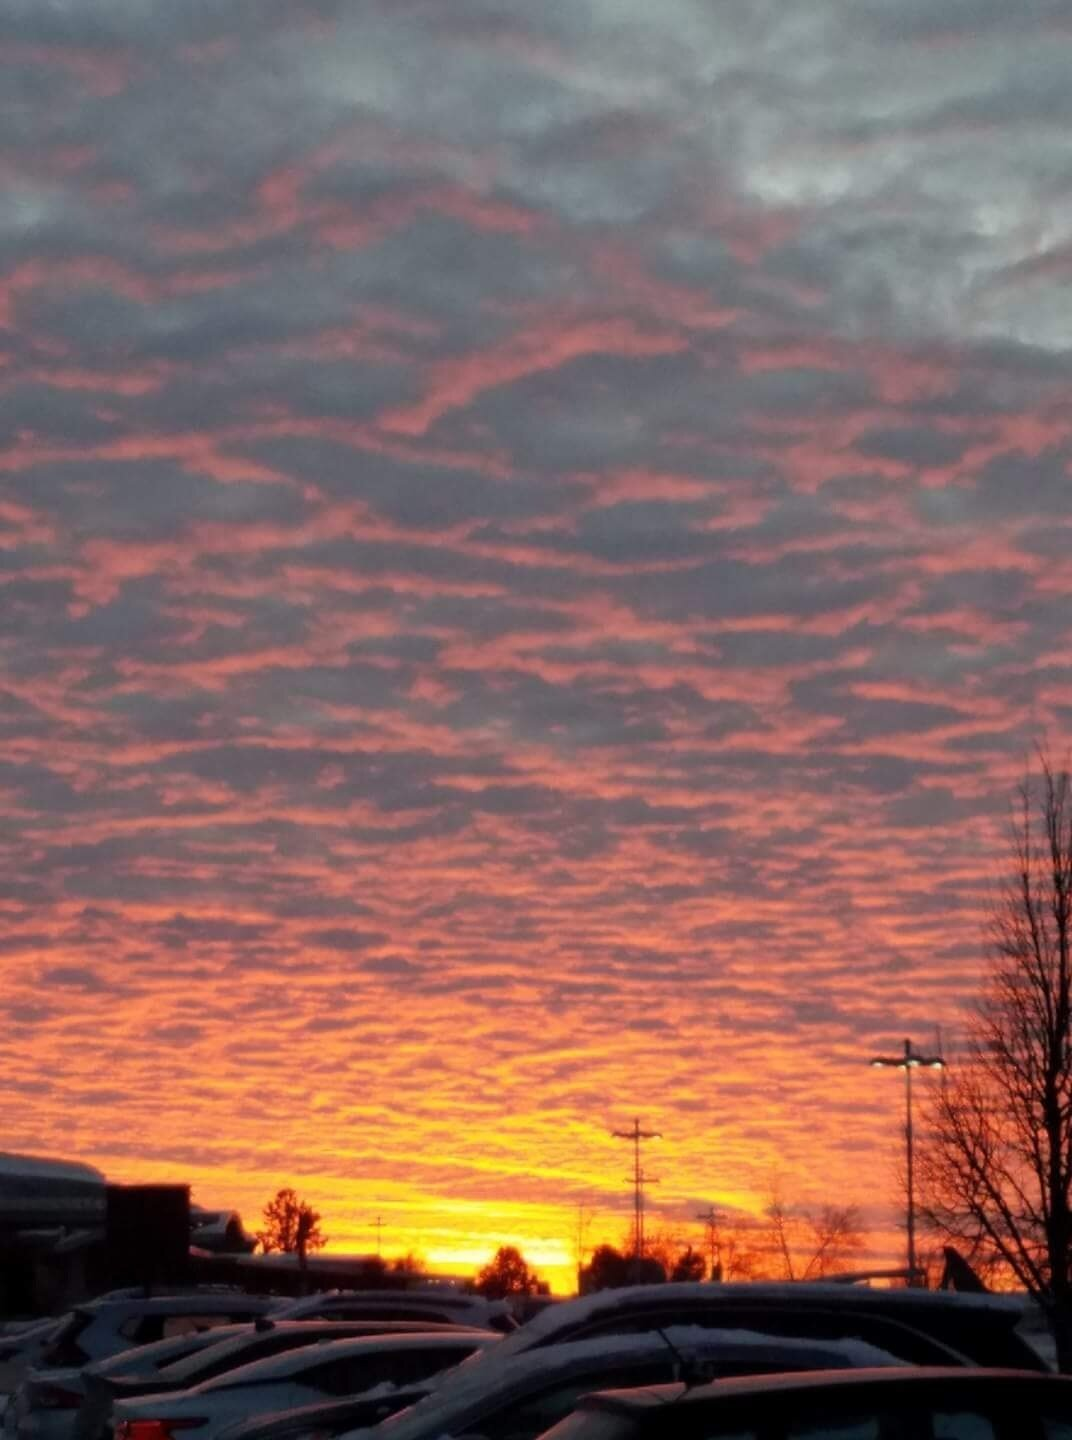 Wesley- Keep the sky in the morning and evening burnt orange for us. -